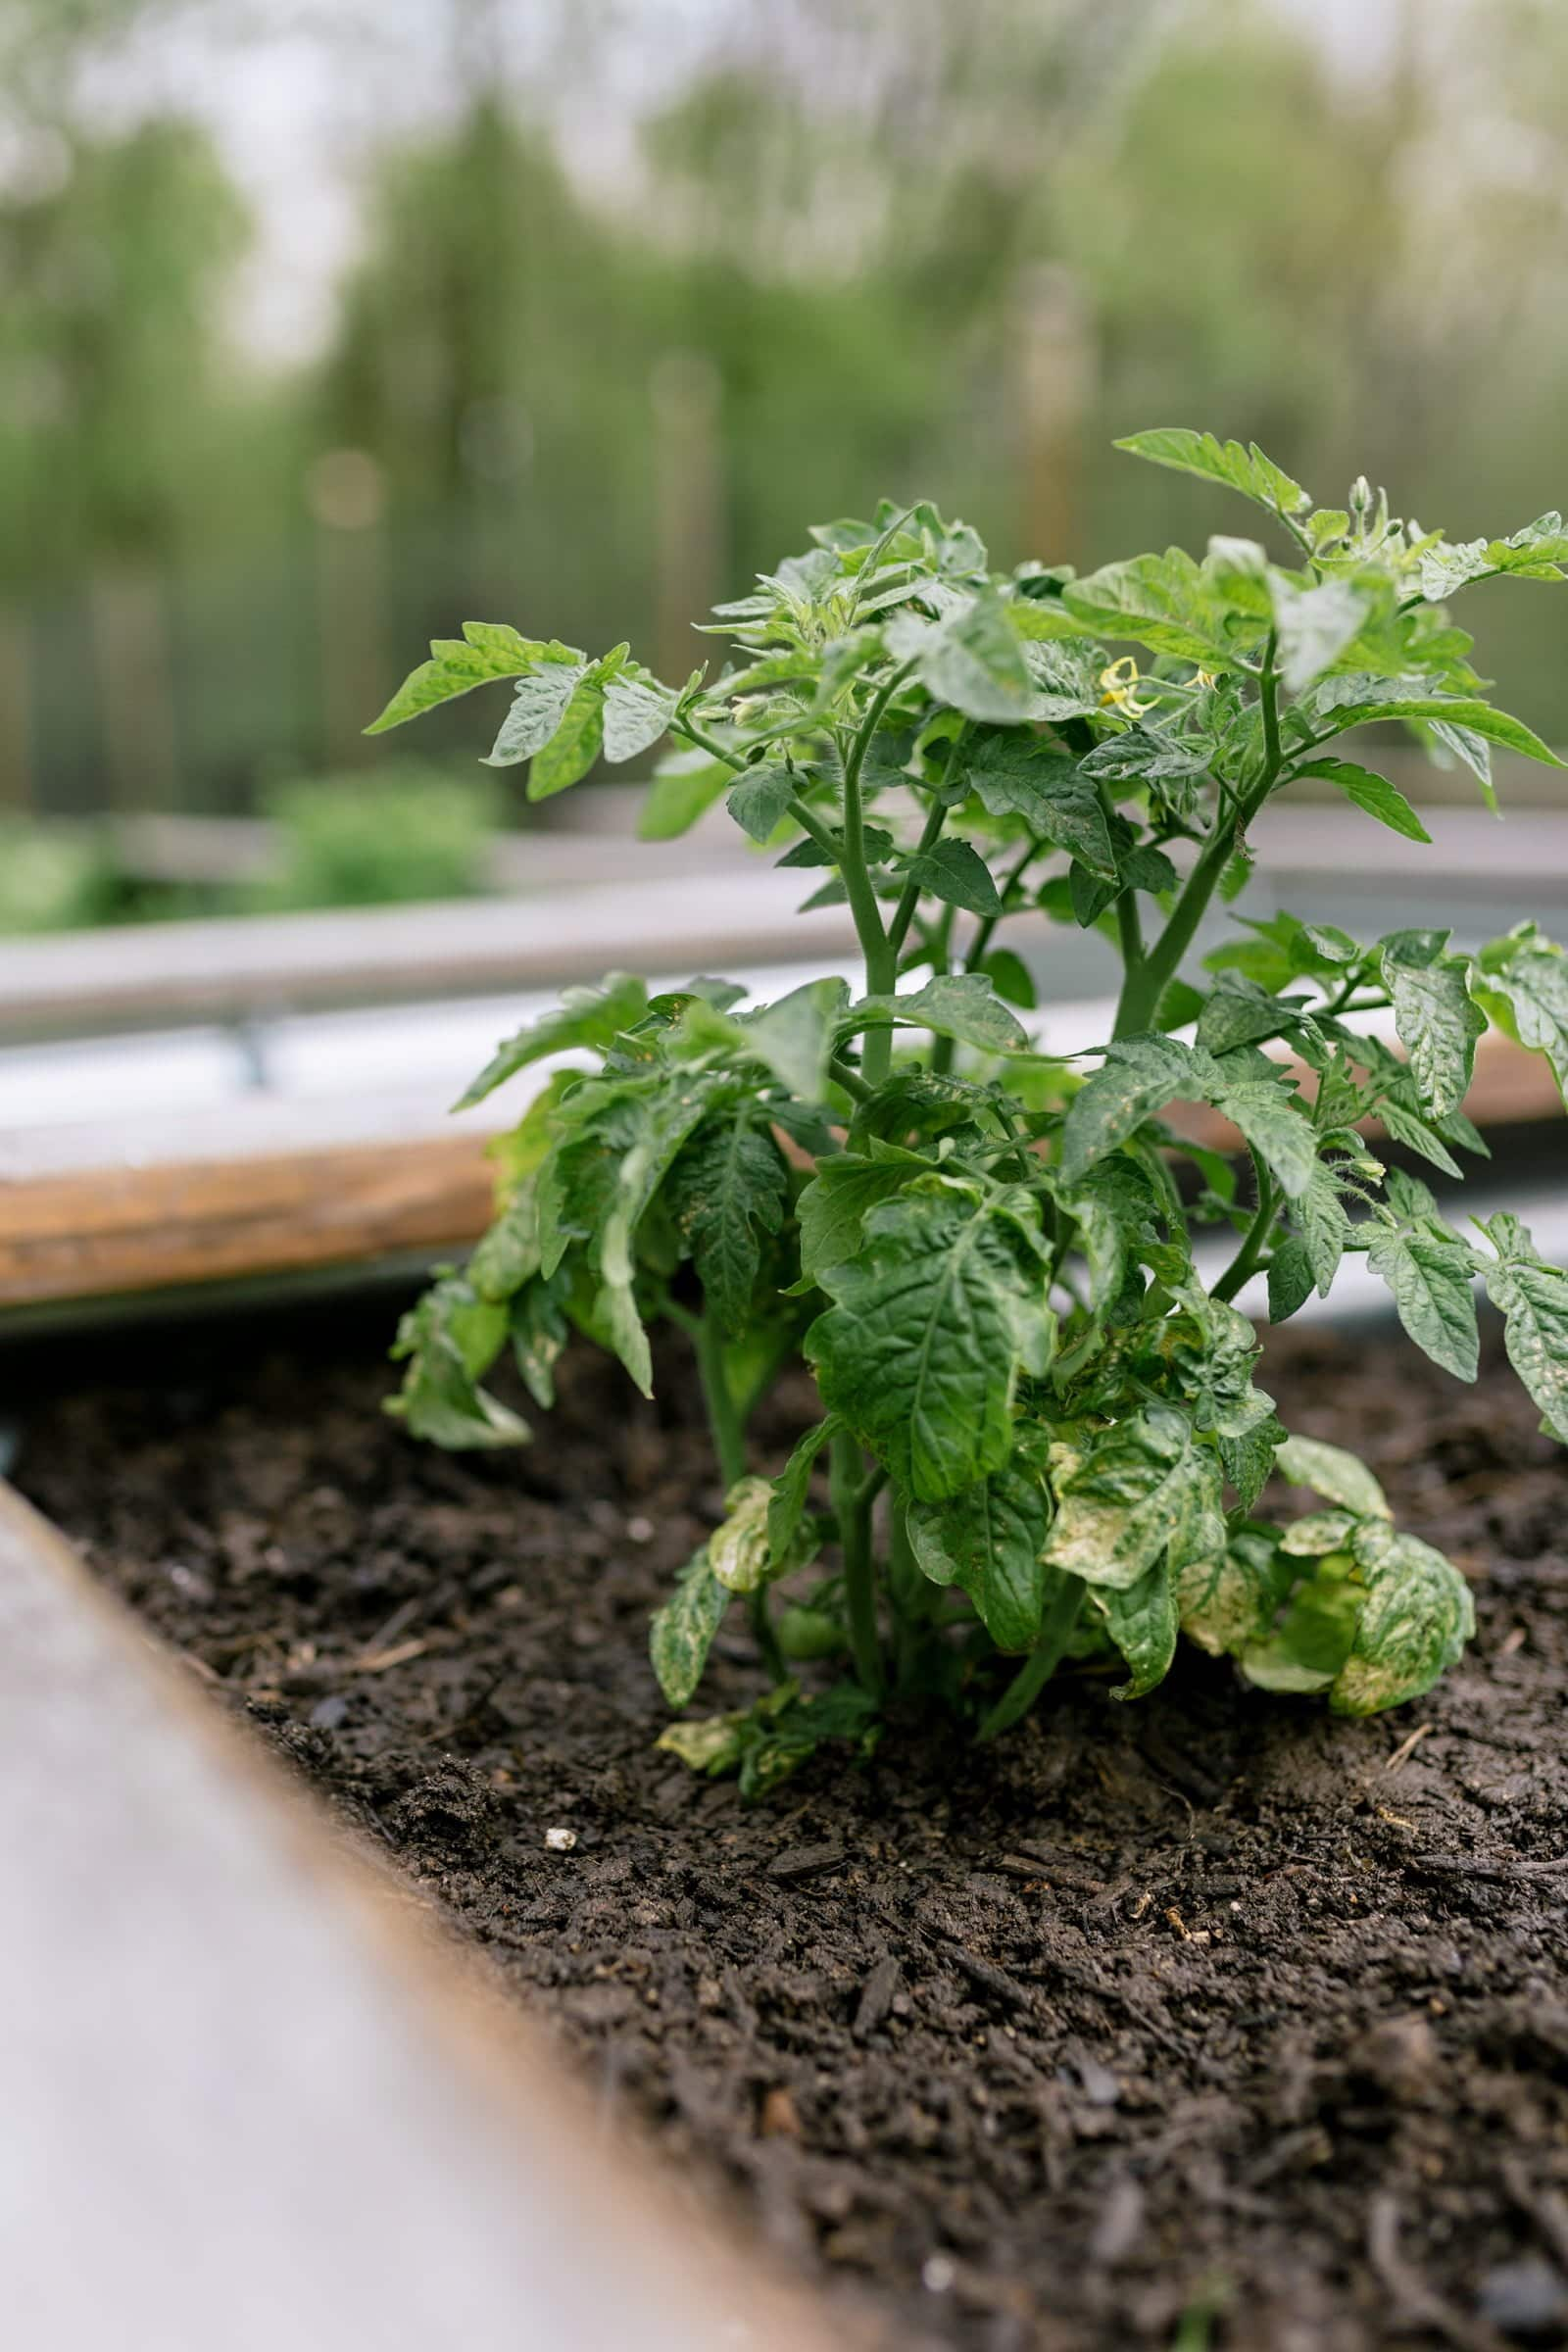 Tomato plant in a garden bed